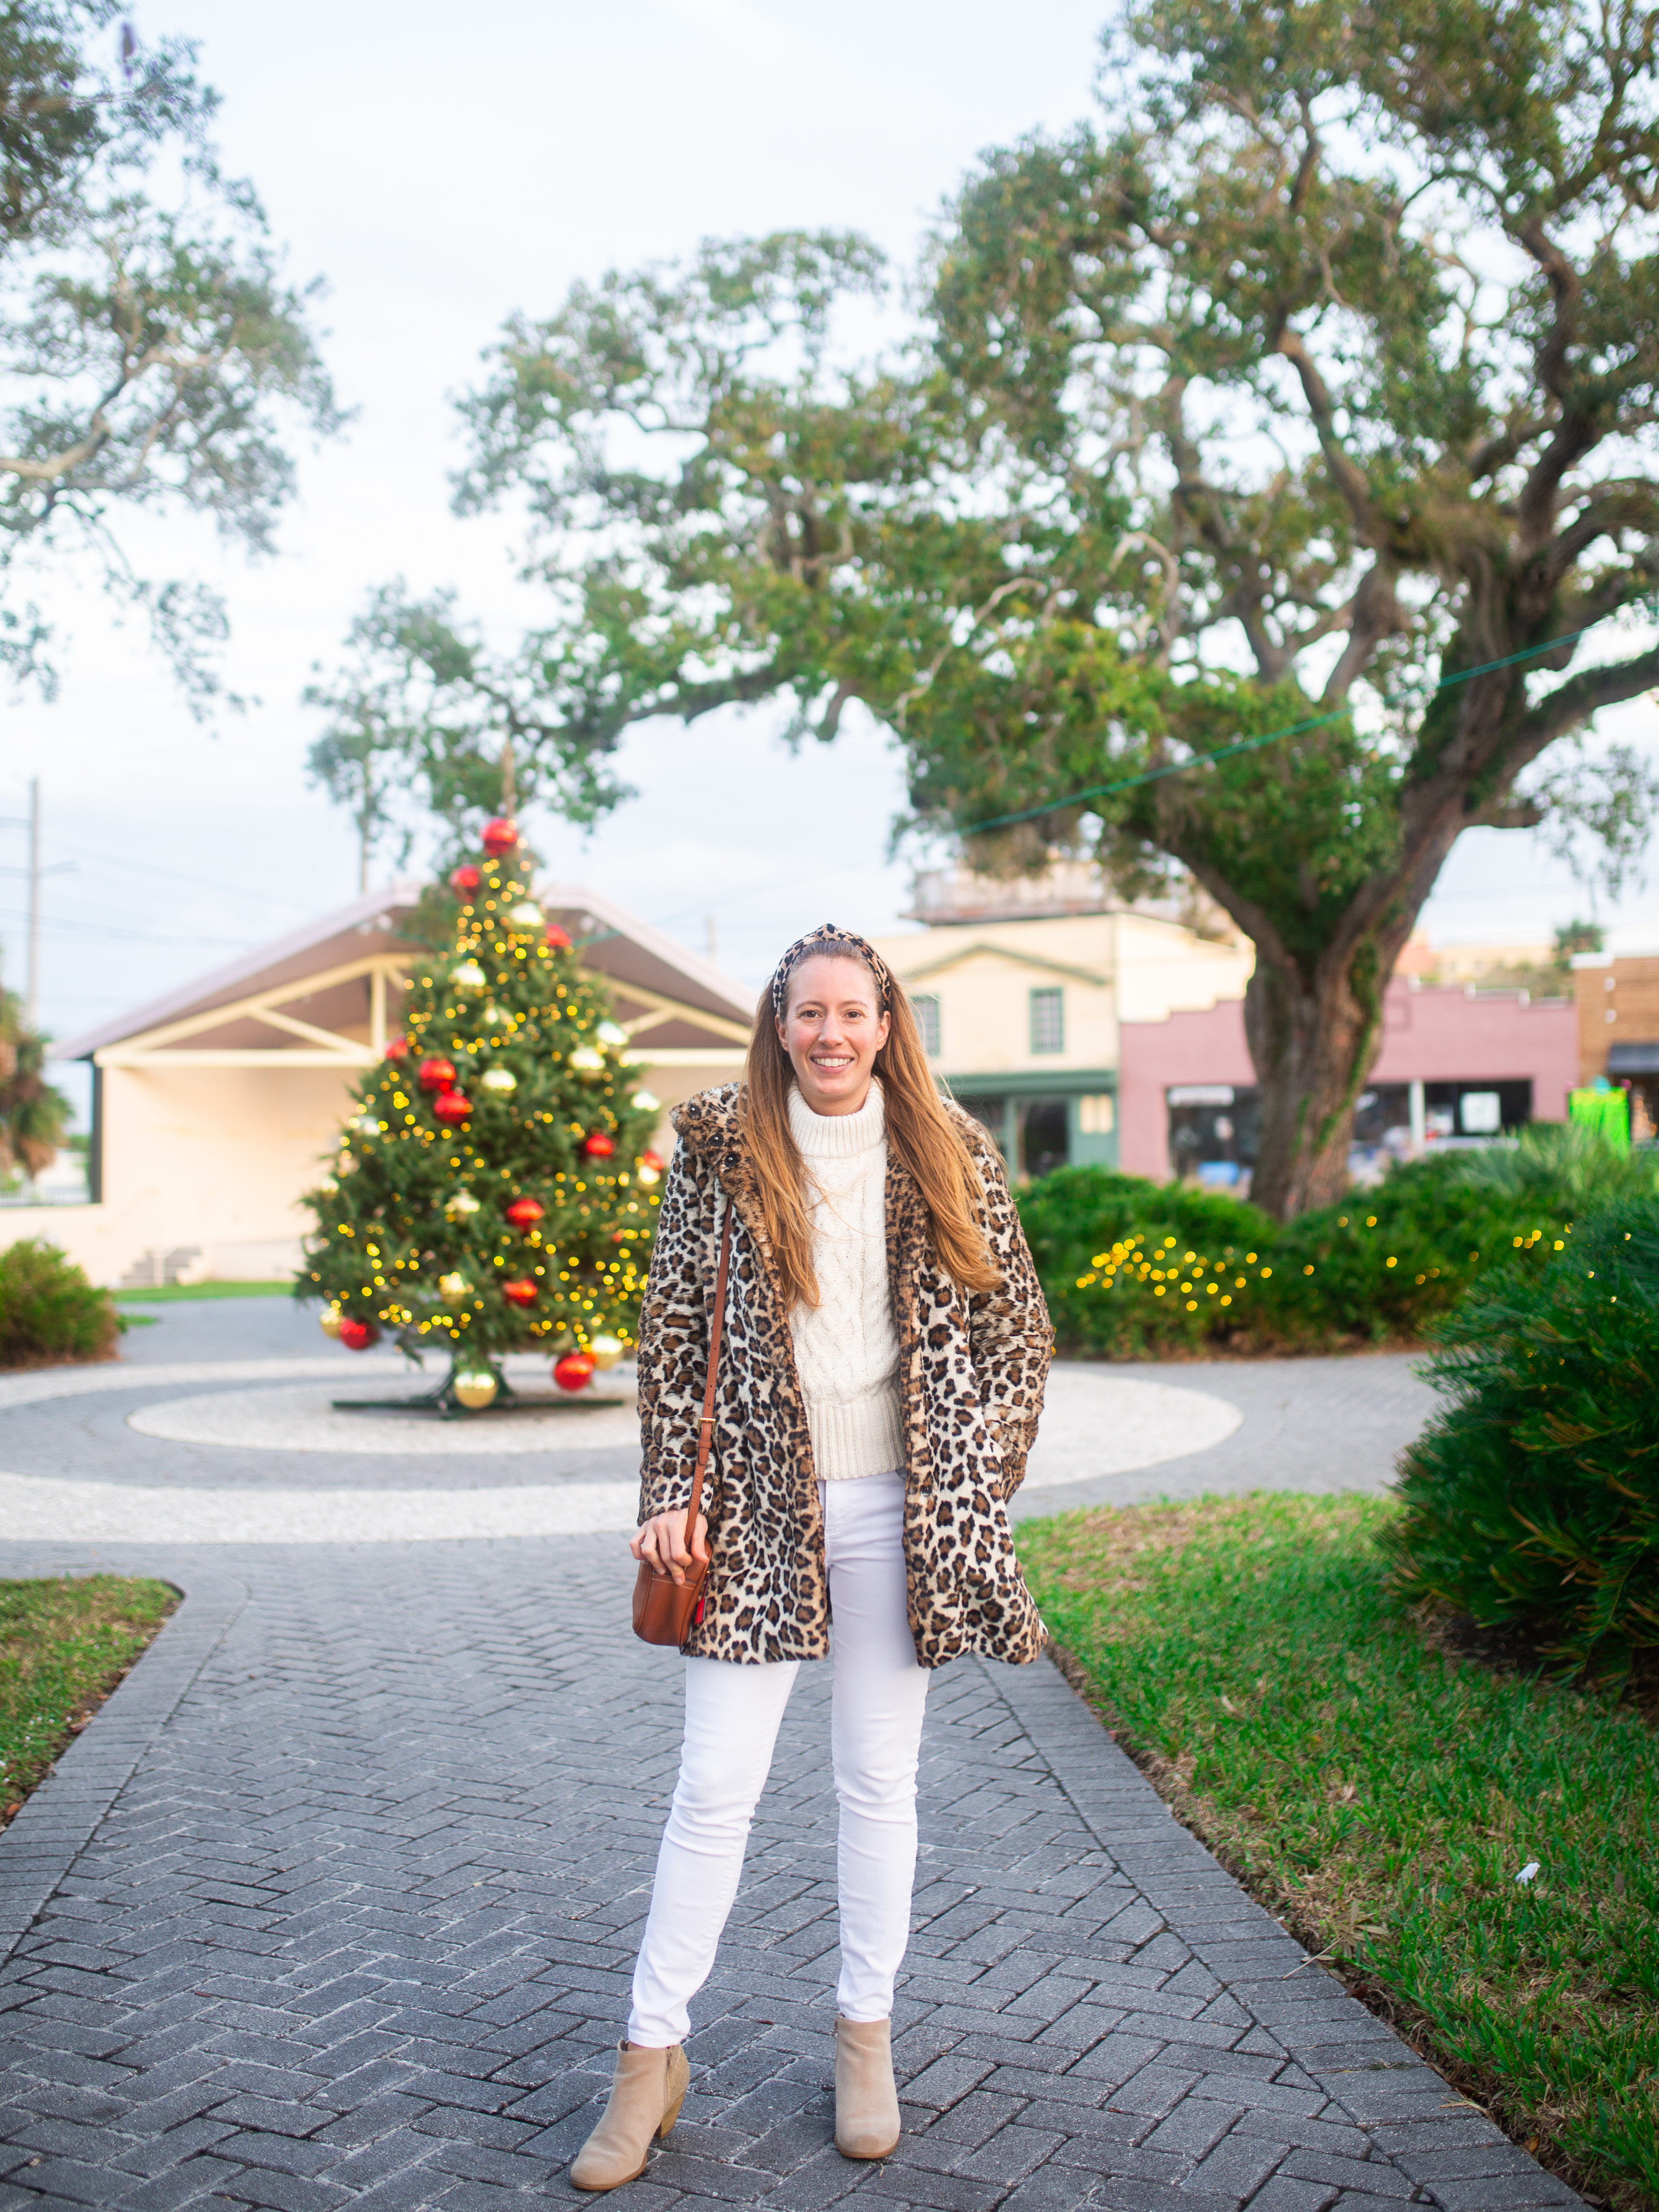 LOFT Faux-Leopard Coat for Winter / How to Style a Leopard Coat / How to Style a Winter Coat / How to Wear a Winter Jacket / Winter Outfit Inspiration - Sunshine Style